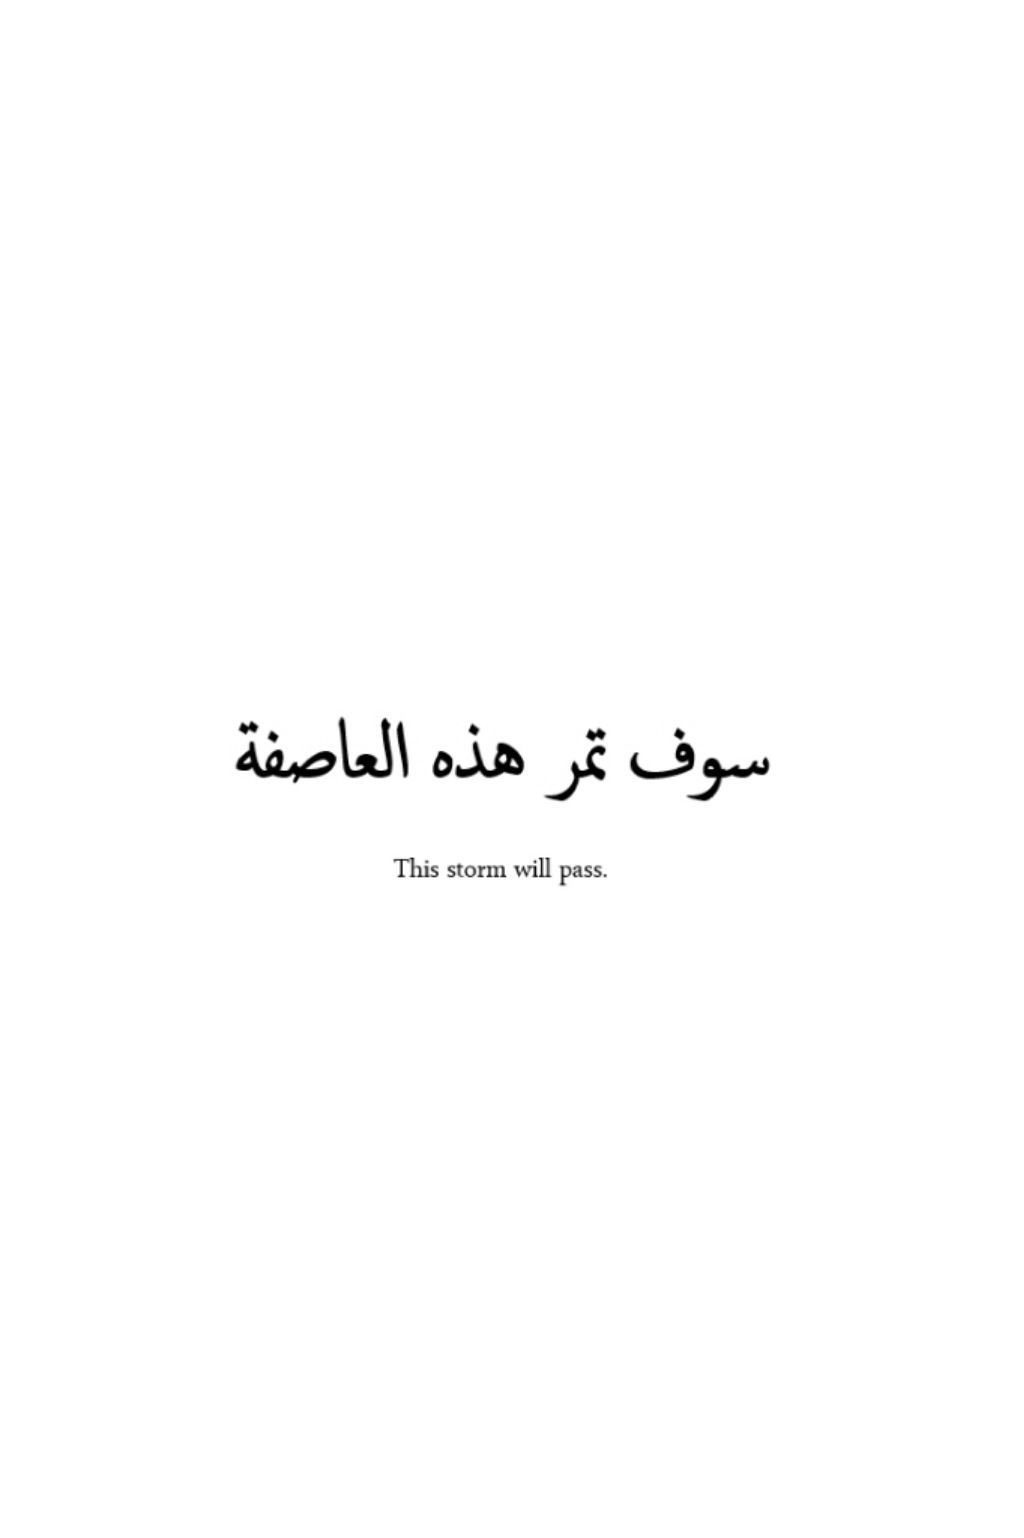 Arabic English Love Quotes | Love quotes collection within